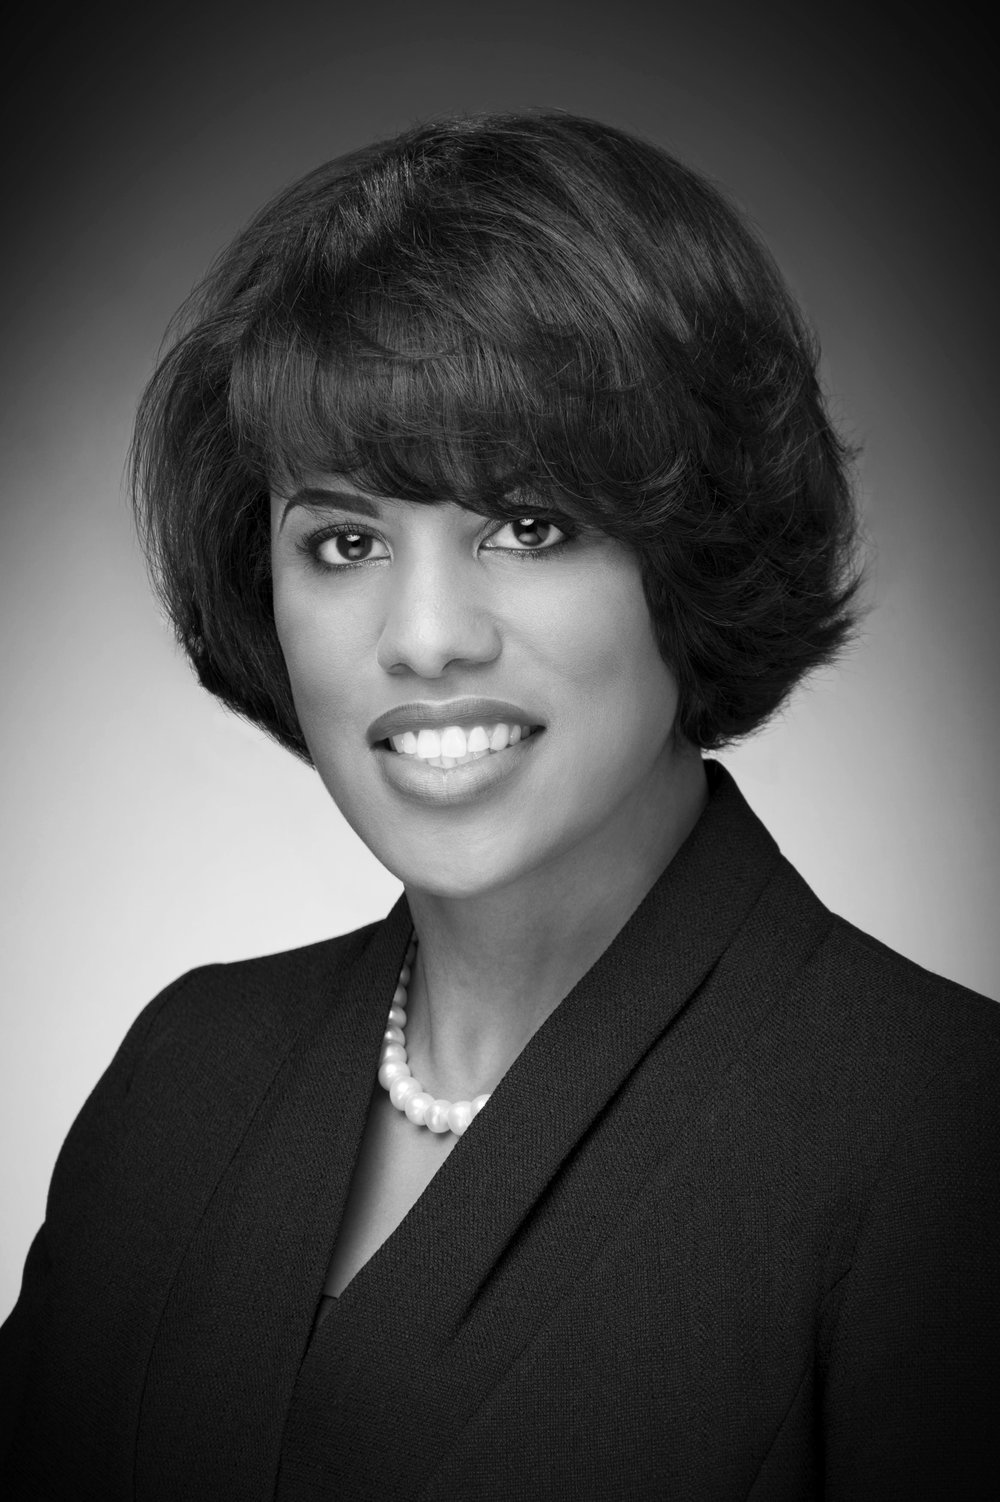 <p><strong>Stephanie Rawlings-Blake</strong>Former Mayor of Baltimore, Maryland<a href=/stephanie-rawlings-blake>More →</a></p>